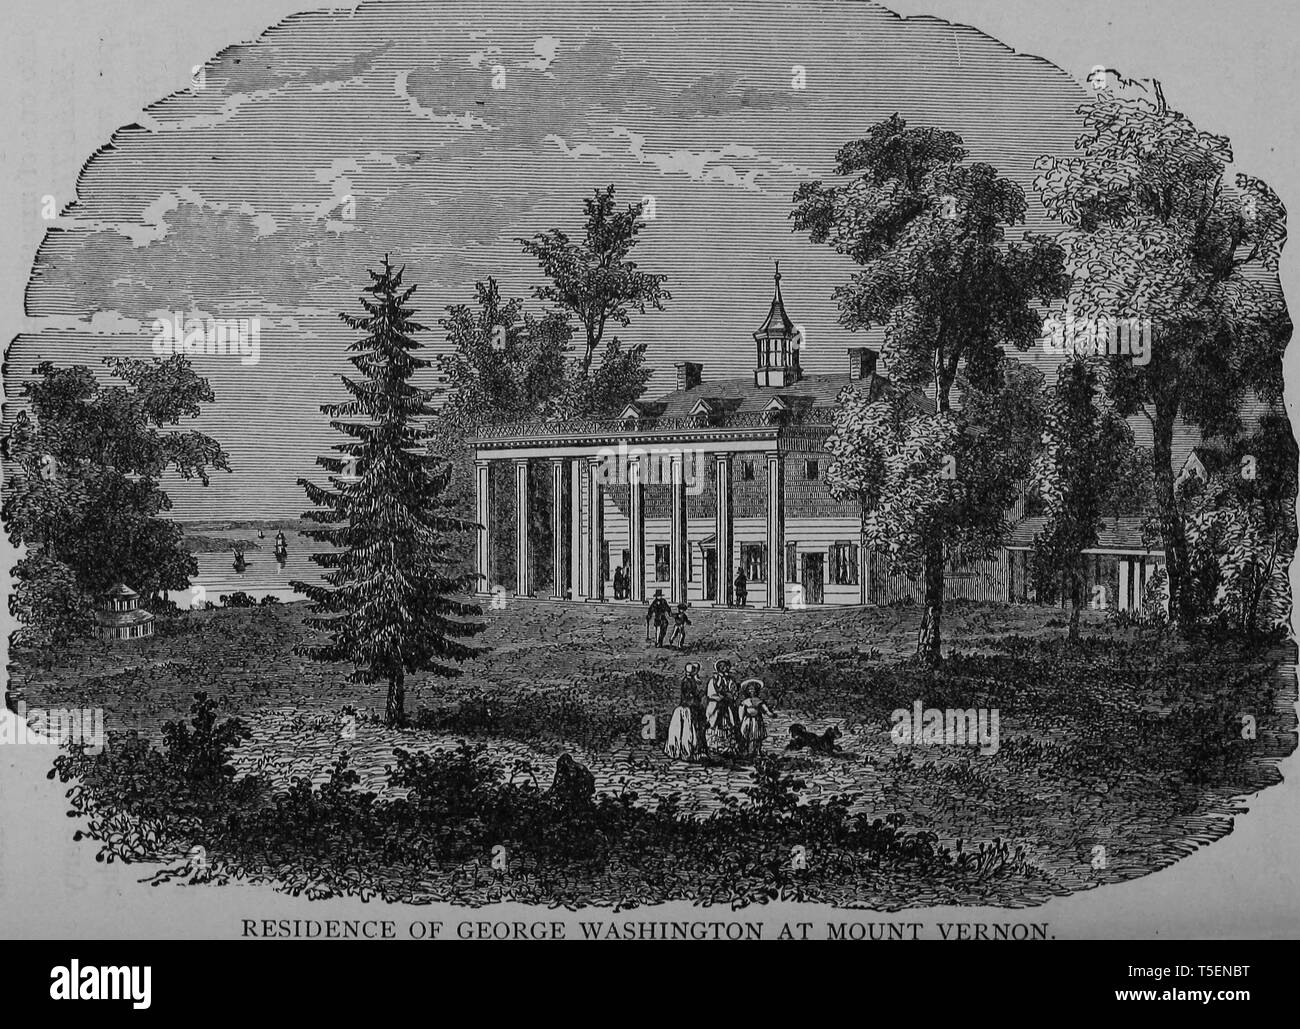 Engraving of George Washington's residence at Mount Vernon, Fairfax County, Virginia, from the book 'The political history of the United States' by James Penny Boyd, 1888. Courtesy Internet Archive. () Stock Photo